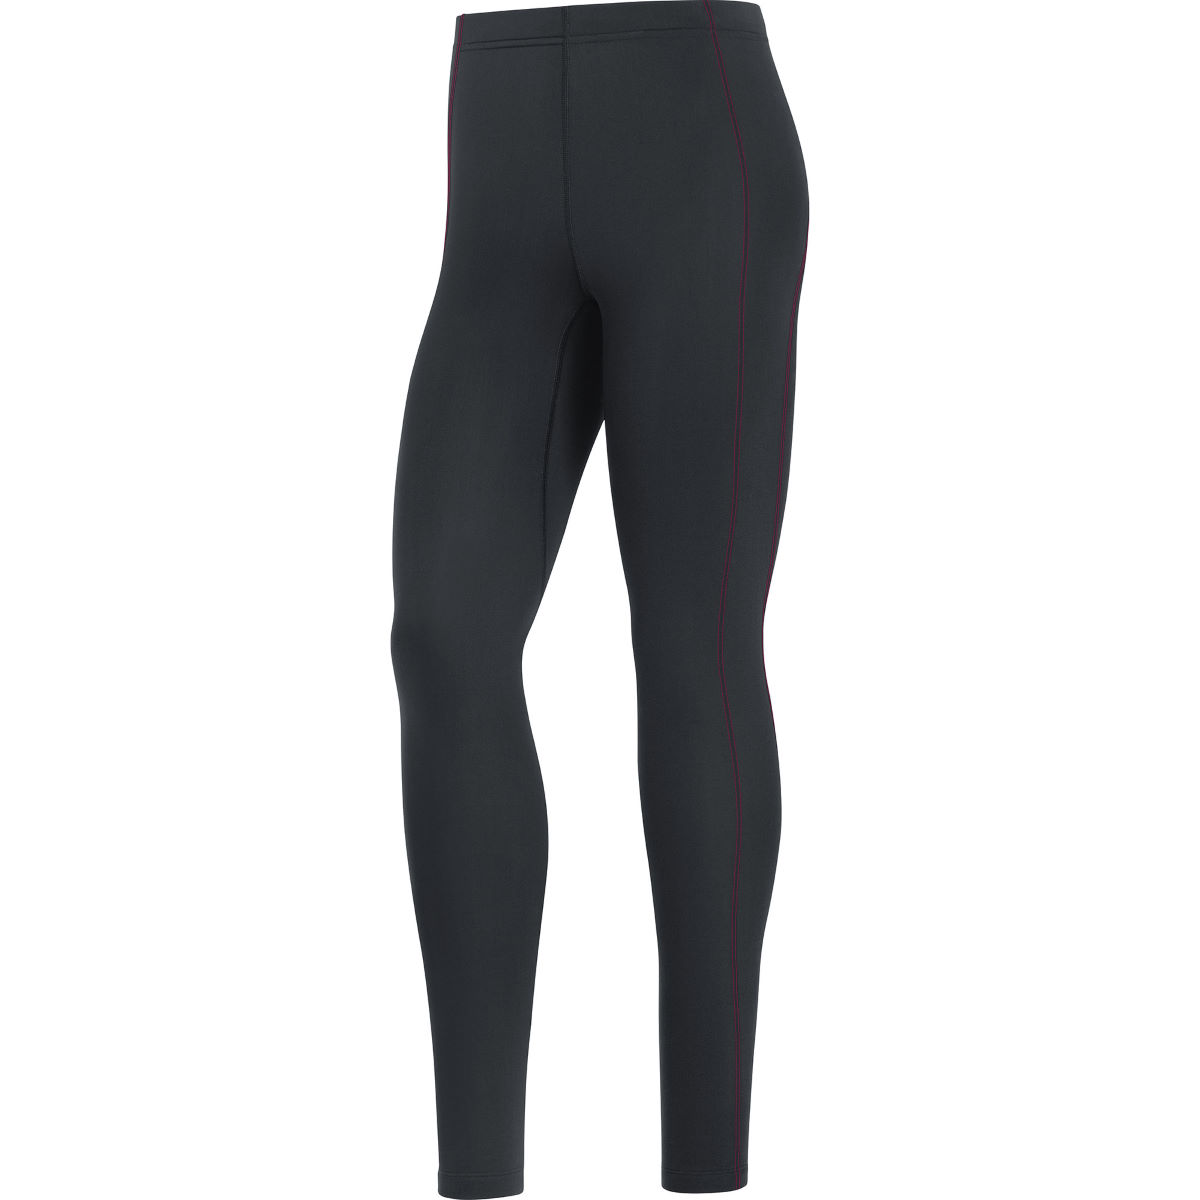 Collant Femme Gore Running Wear Essential Thermo - L